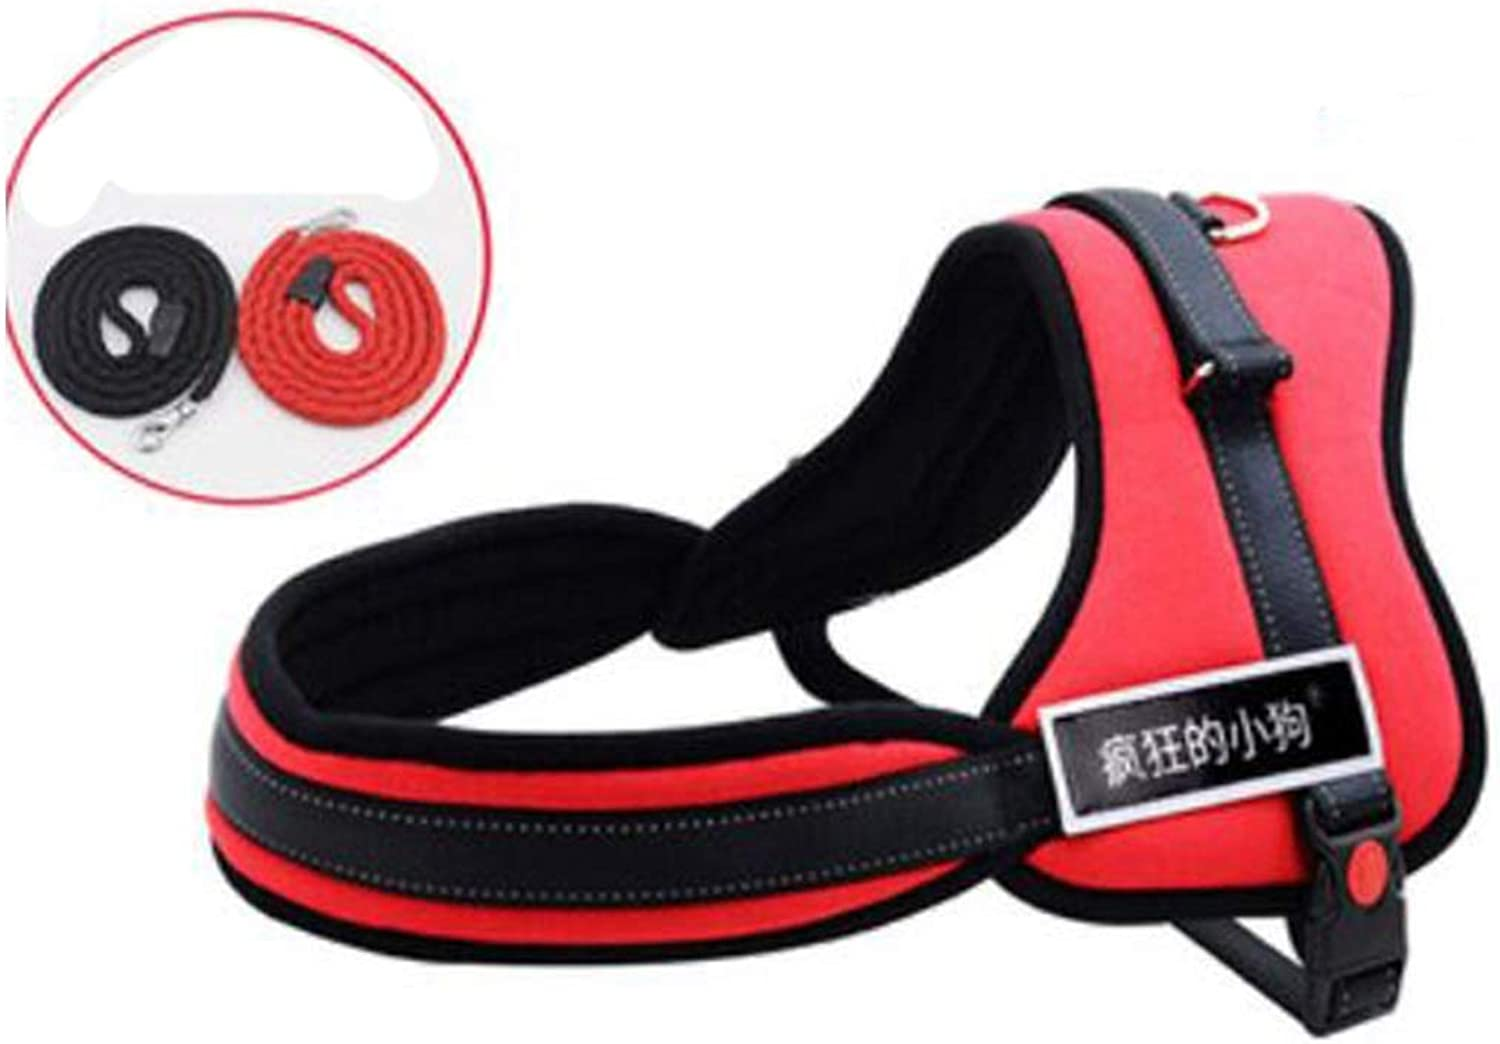 Pet Leash, Dog Leash, Chest Strap, Medium Dog, Dog Chain, Large Dog, Dog Collar, pet Supplies, k8, red, Yellow, Green, 3 colors, 5 Sizes (color   Red, Size   S)